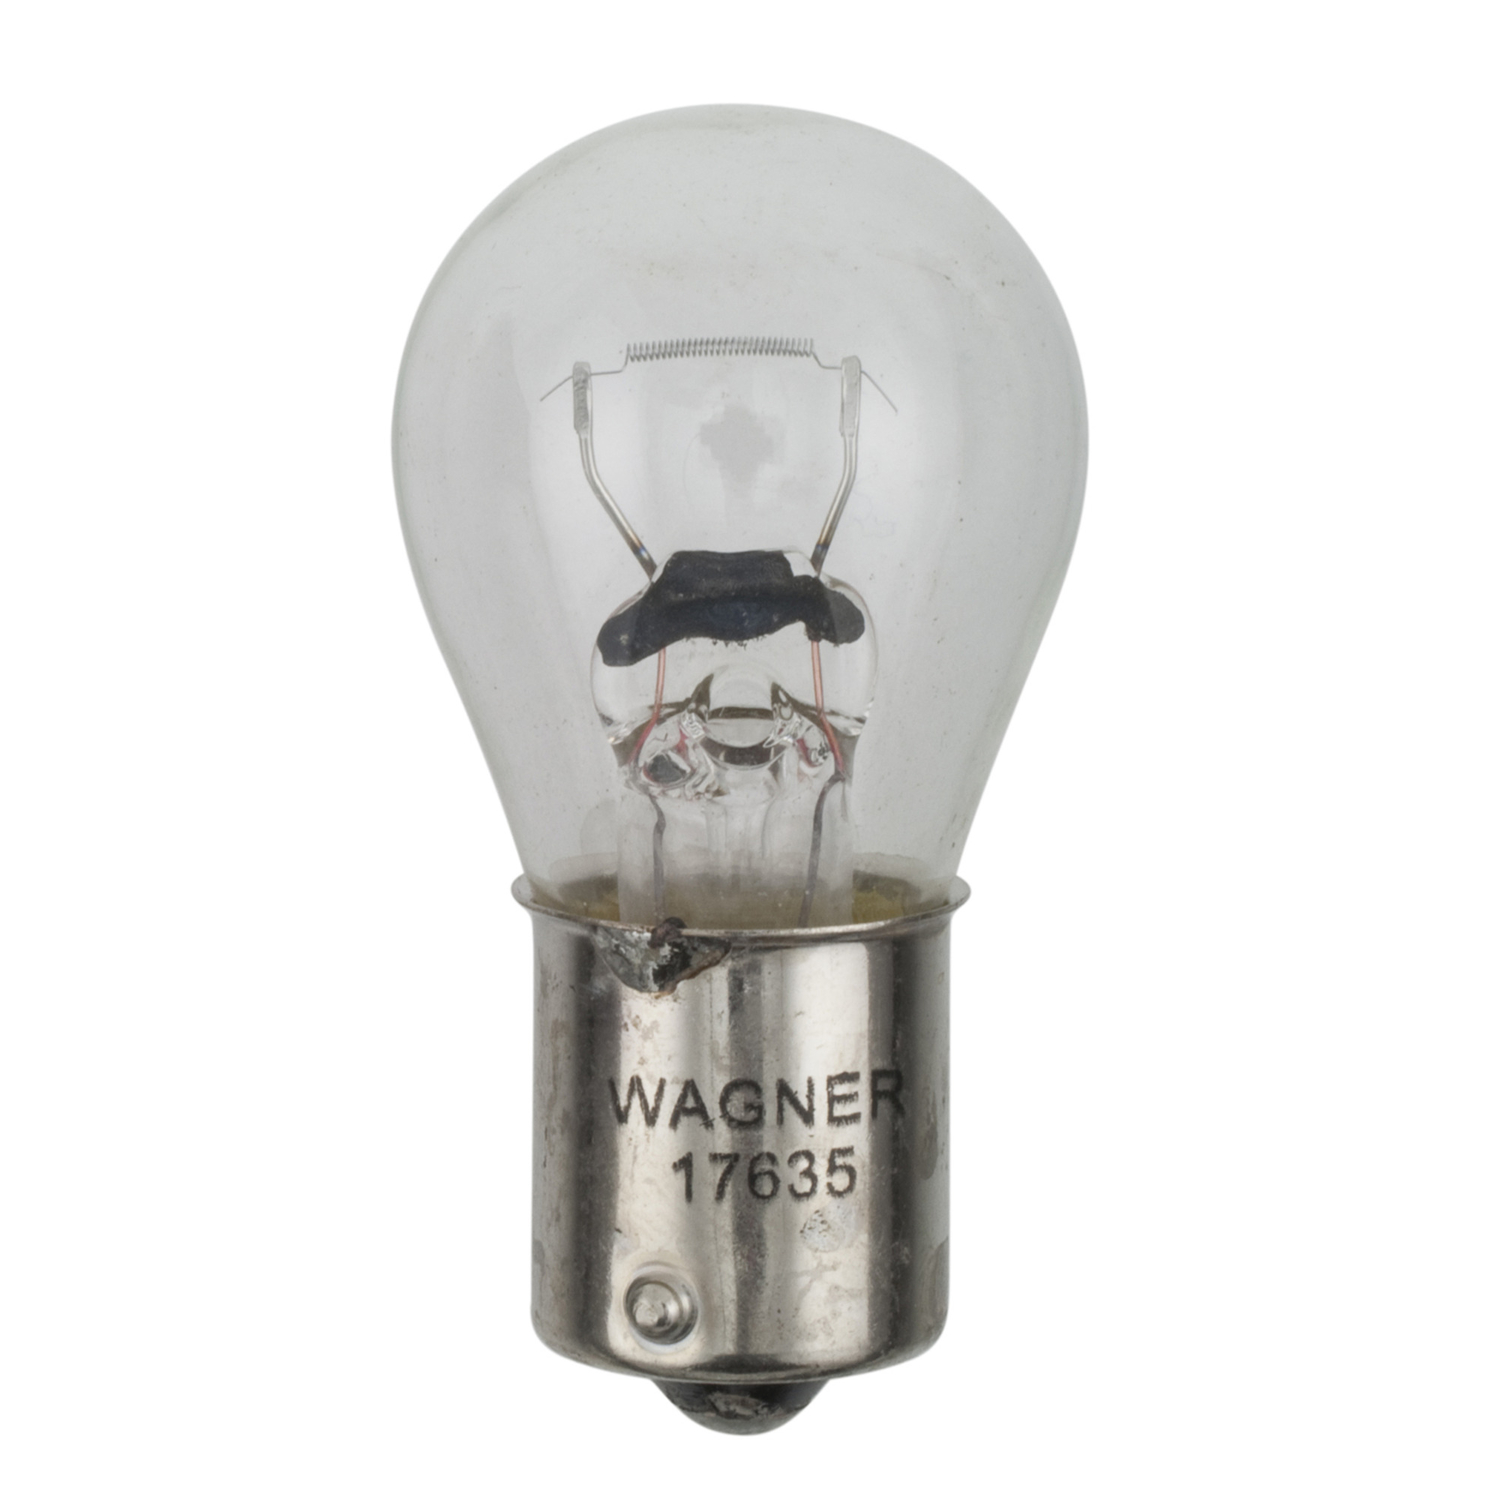 WAGNER LIGHTING - Center High Mount Stop Light Bulb - WLP 17635